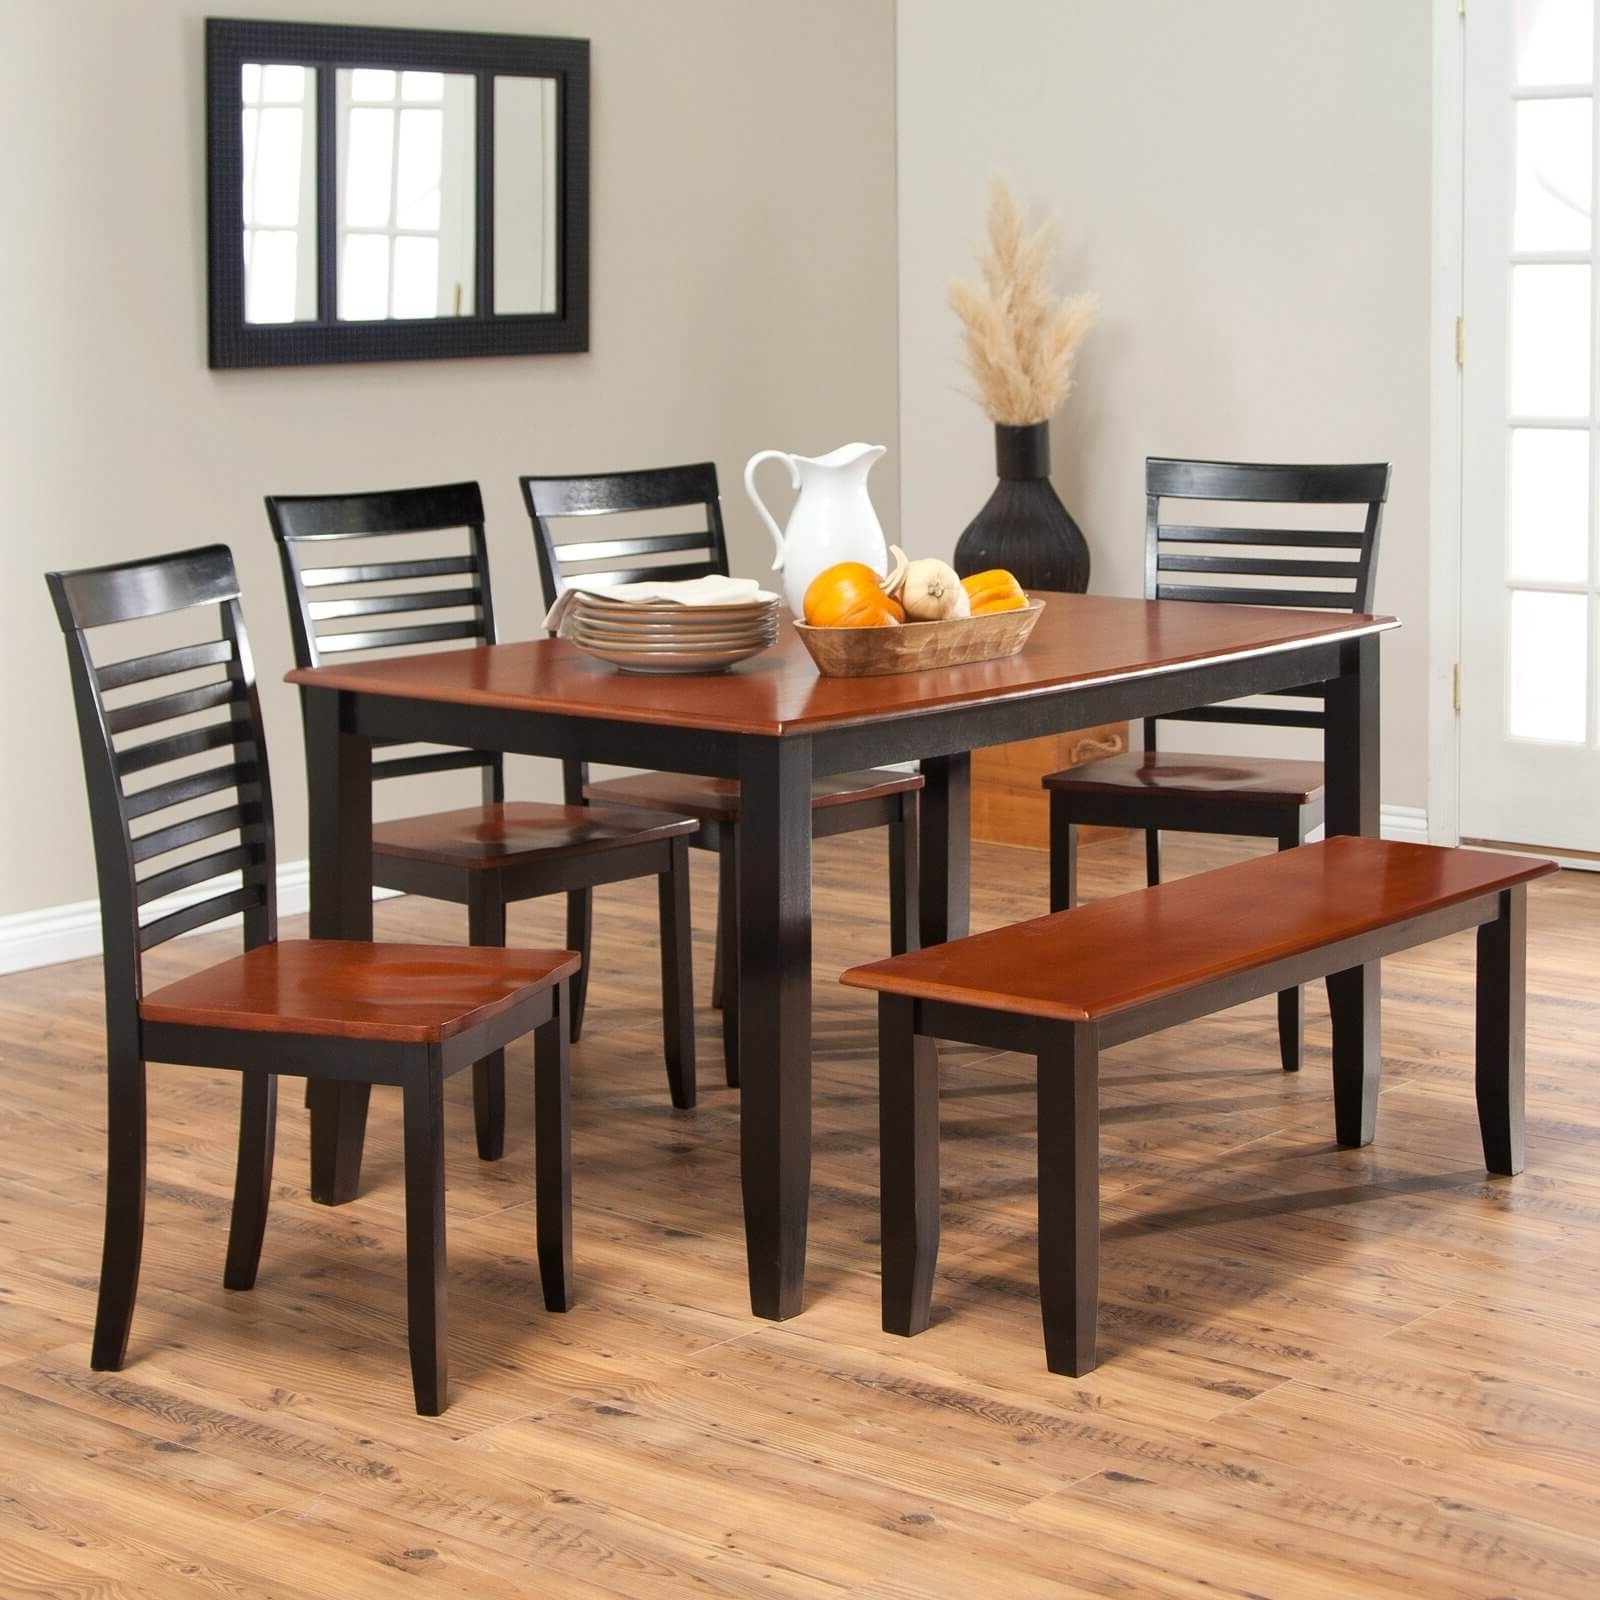 26 Dining Room Sets (Big And Small) With Bench Seating (2018) With Current Dark Wood Dining Tables 6 Chairs (View 7 of 25)